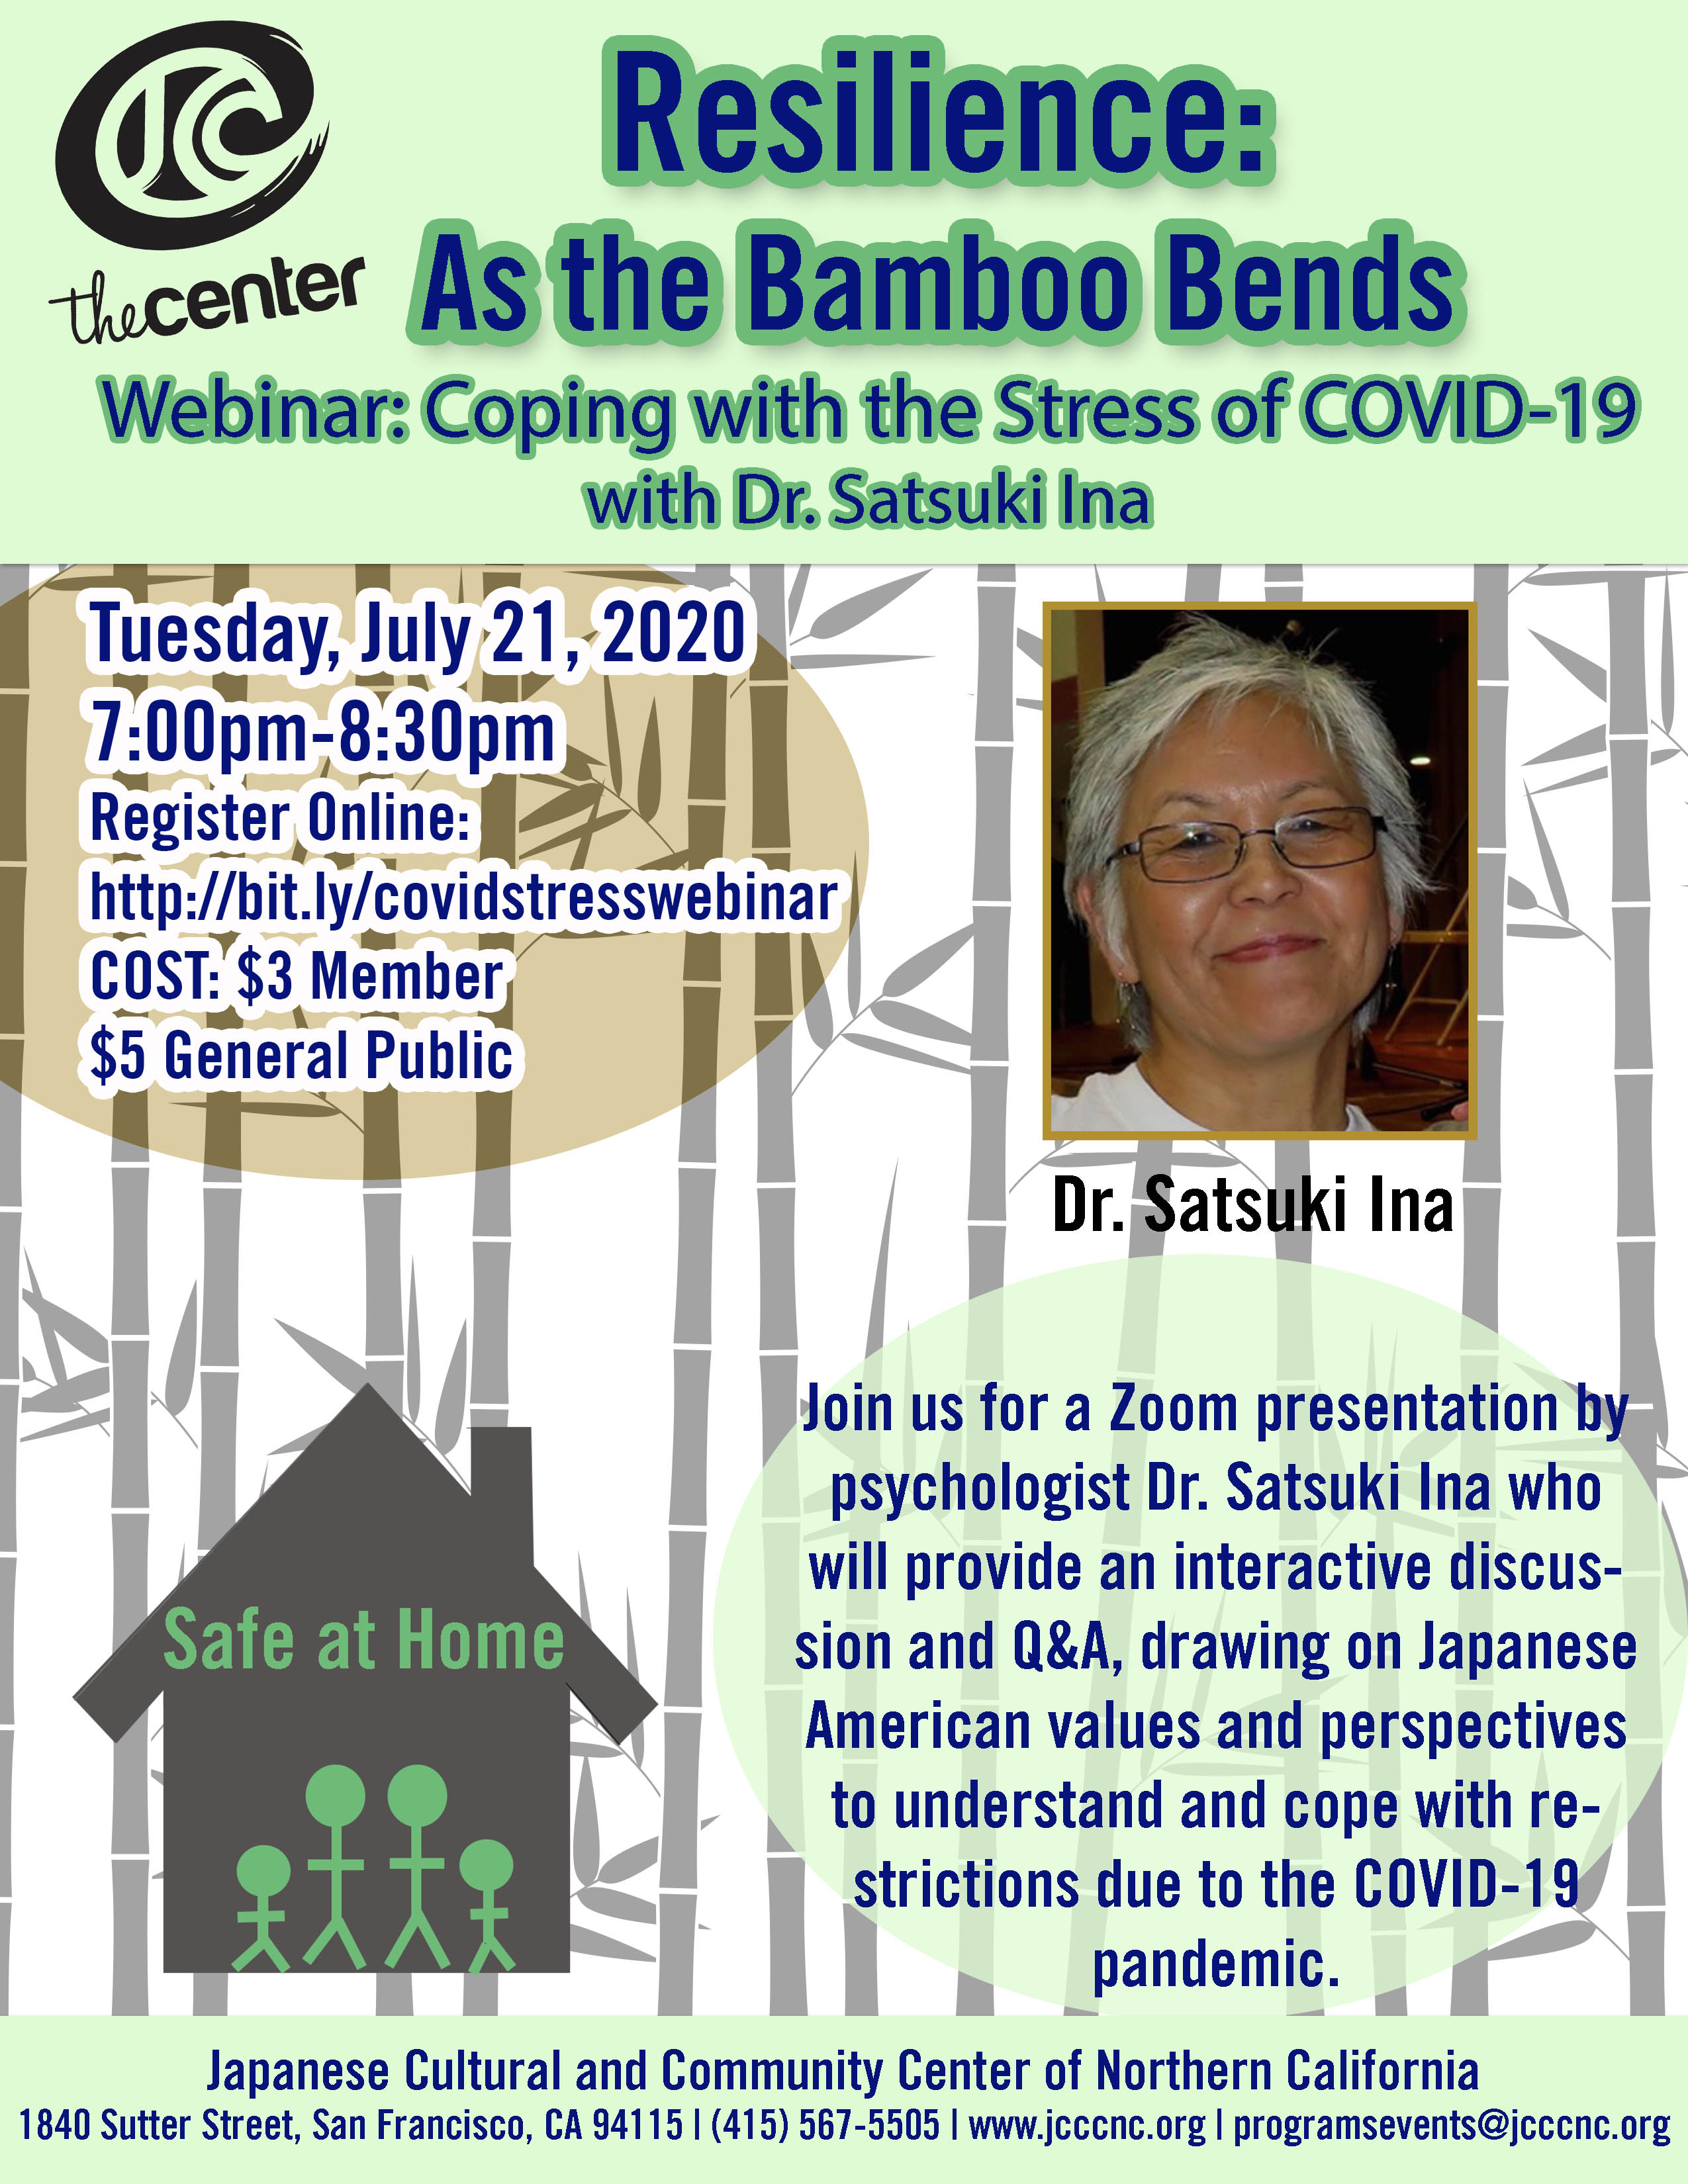 Resilience: As the Bamboo Bends – Coping with the Stress of COVID-19 with Dr. Satsuki Ina